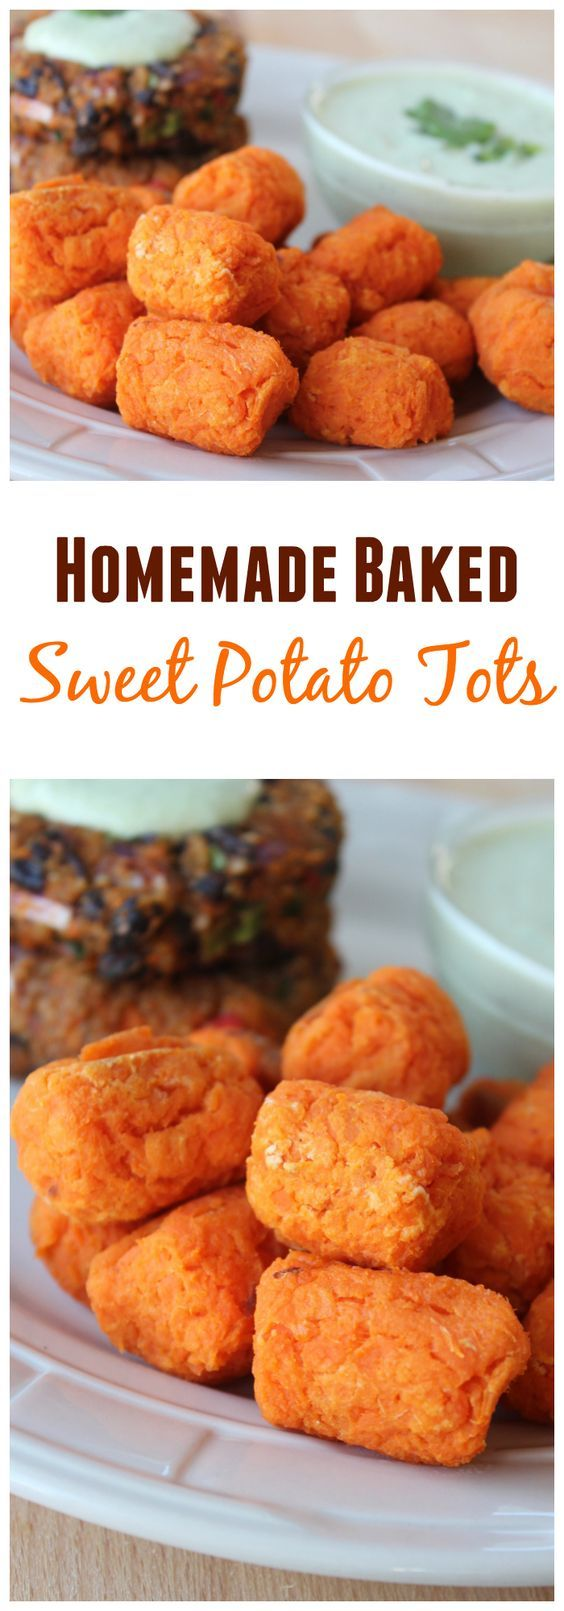 Ditch the bag of frozen tater tots for these Homemade Baked Sweet Potato Tots - they're healthy, gluten-free, vegan & made with only 3 ingredients!